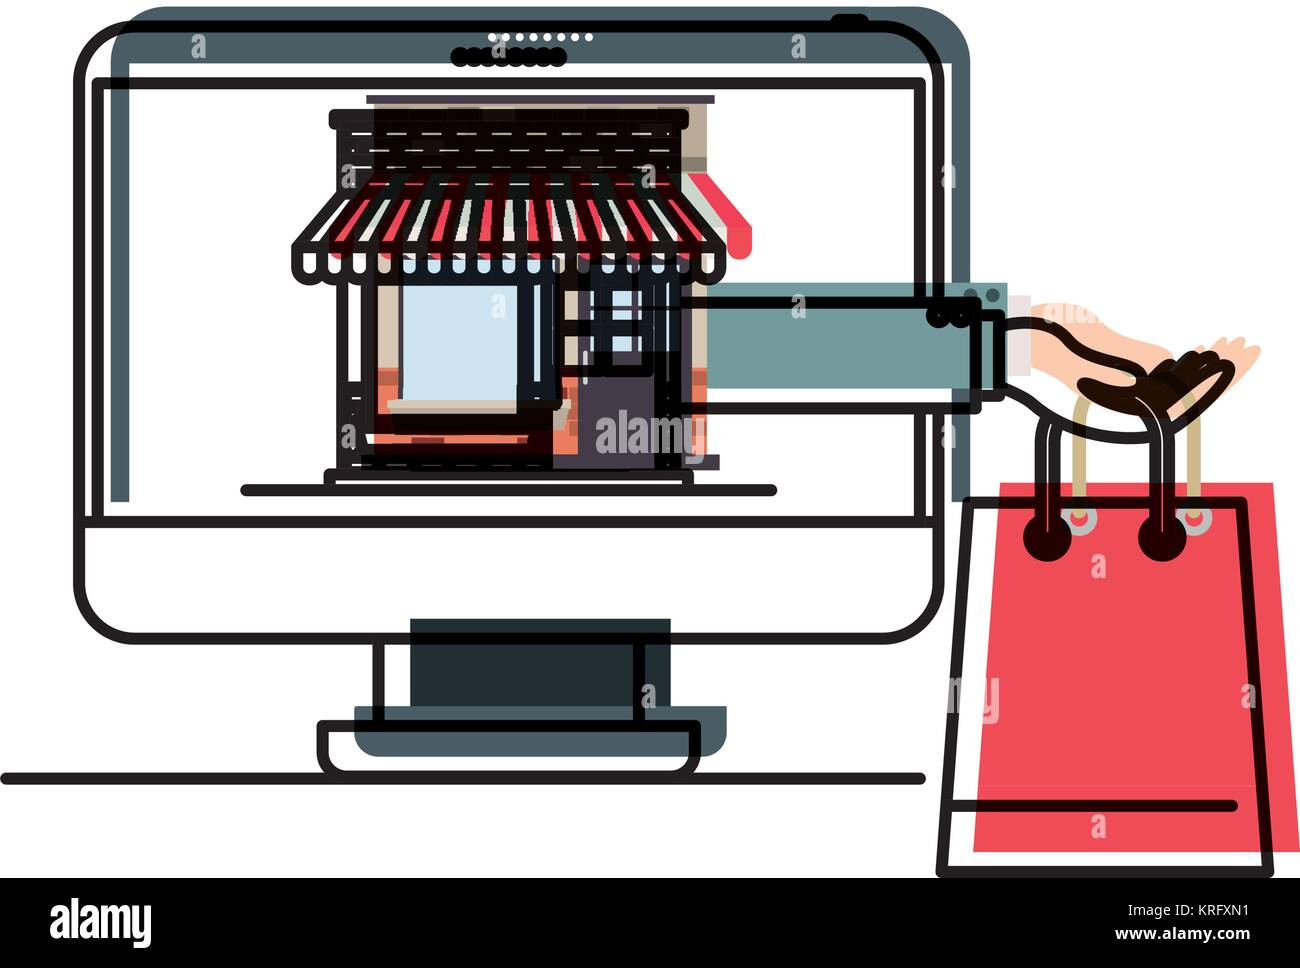 Computer Online Store Desktop Computer Front View With Online Store And Shopping Bag In